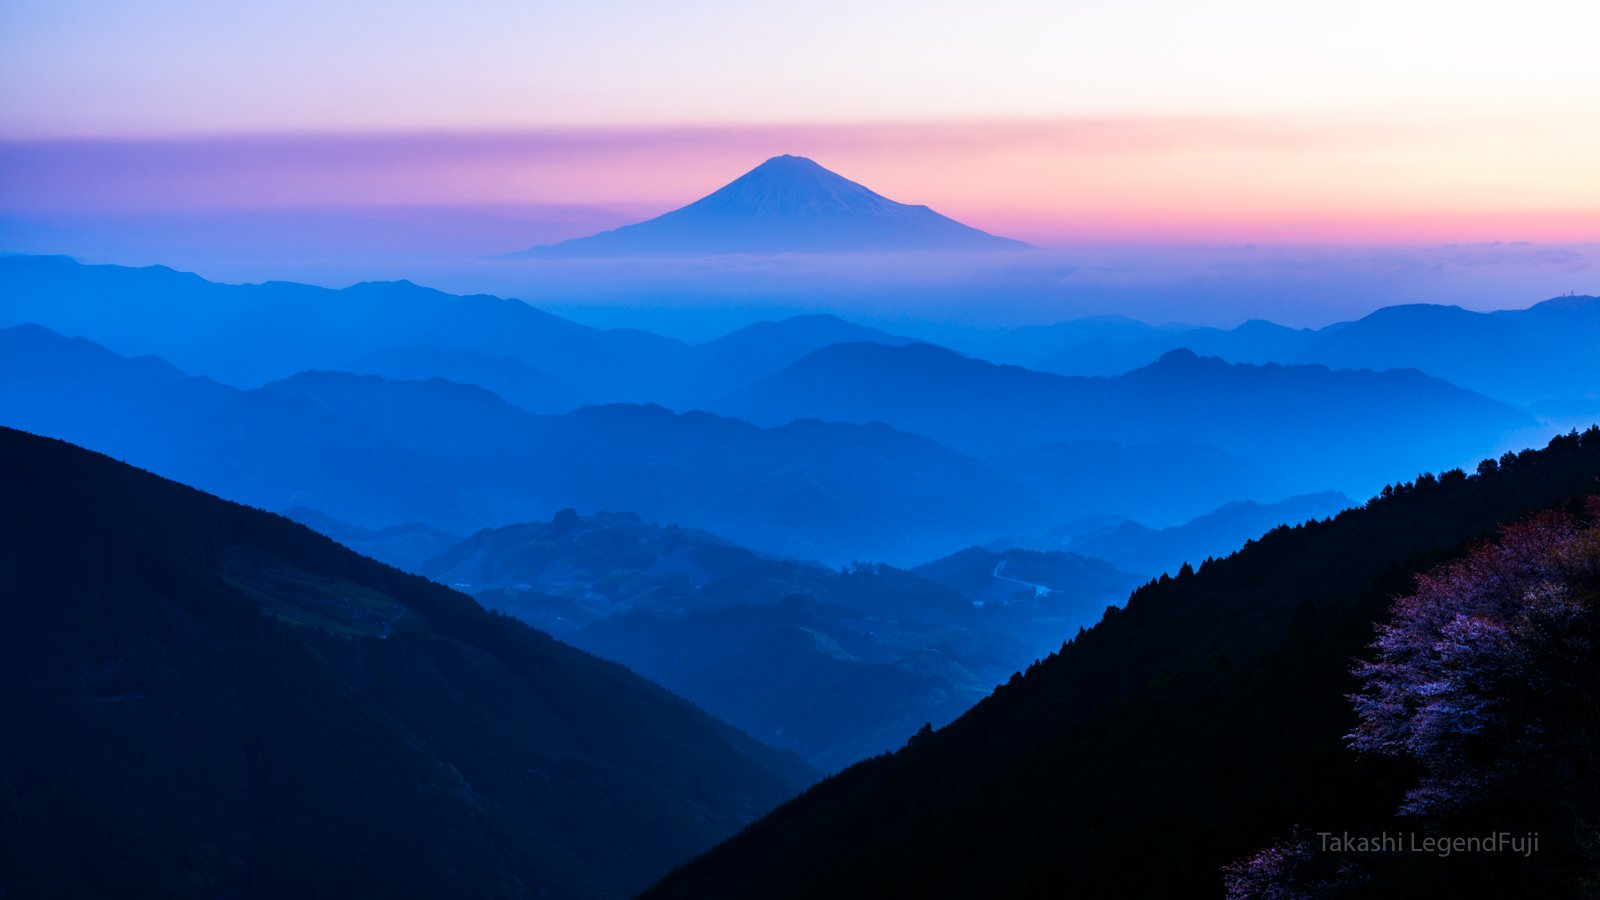 Fuji,mountain,Sakura,cherry,morning,dawn,blue,pink,beautiful,amazing,, Takashi